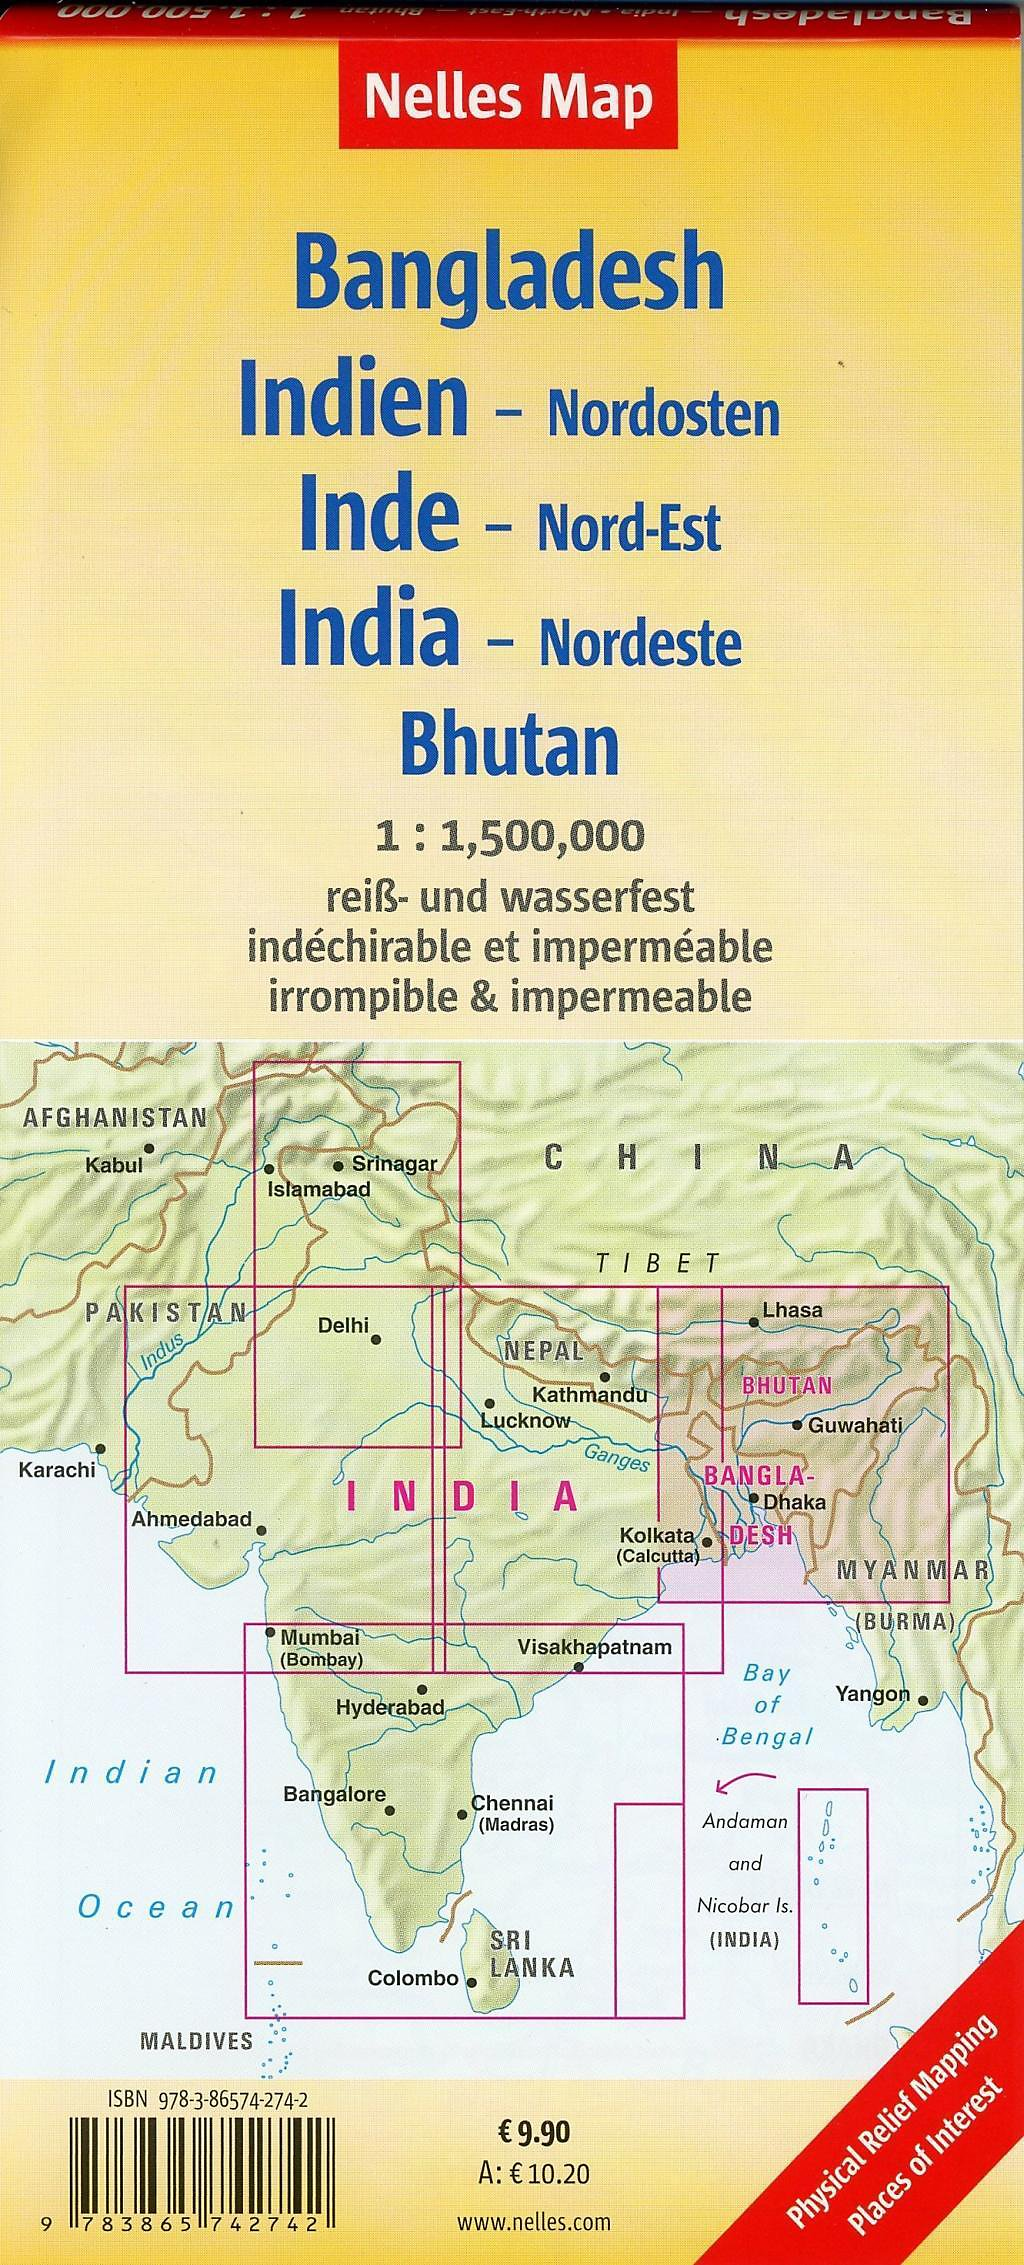 Nelles Map Landkarte Bangladesh India: North-East Bhutan Buch